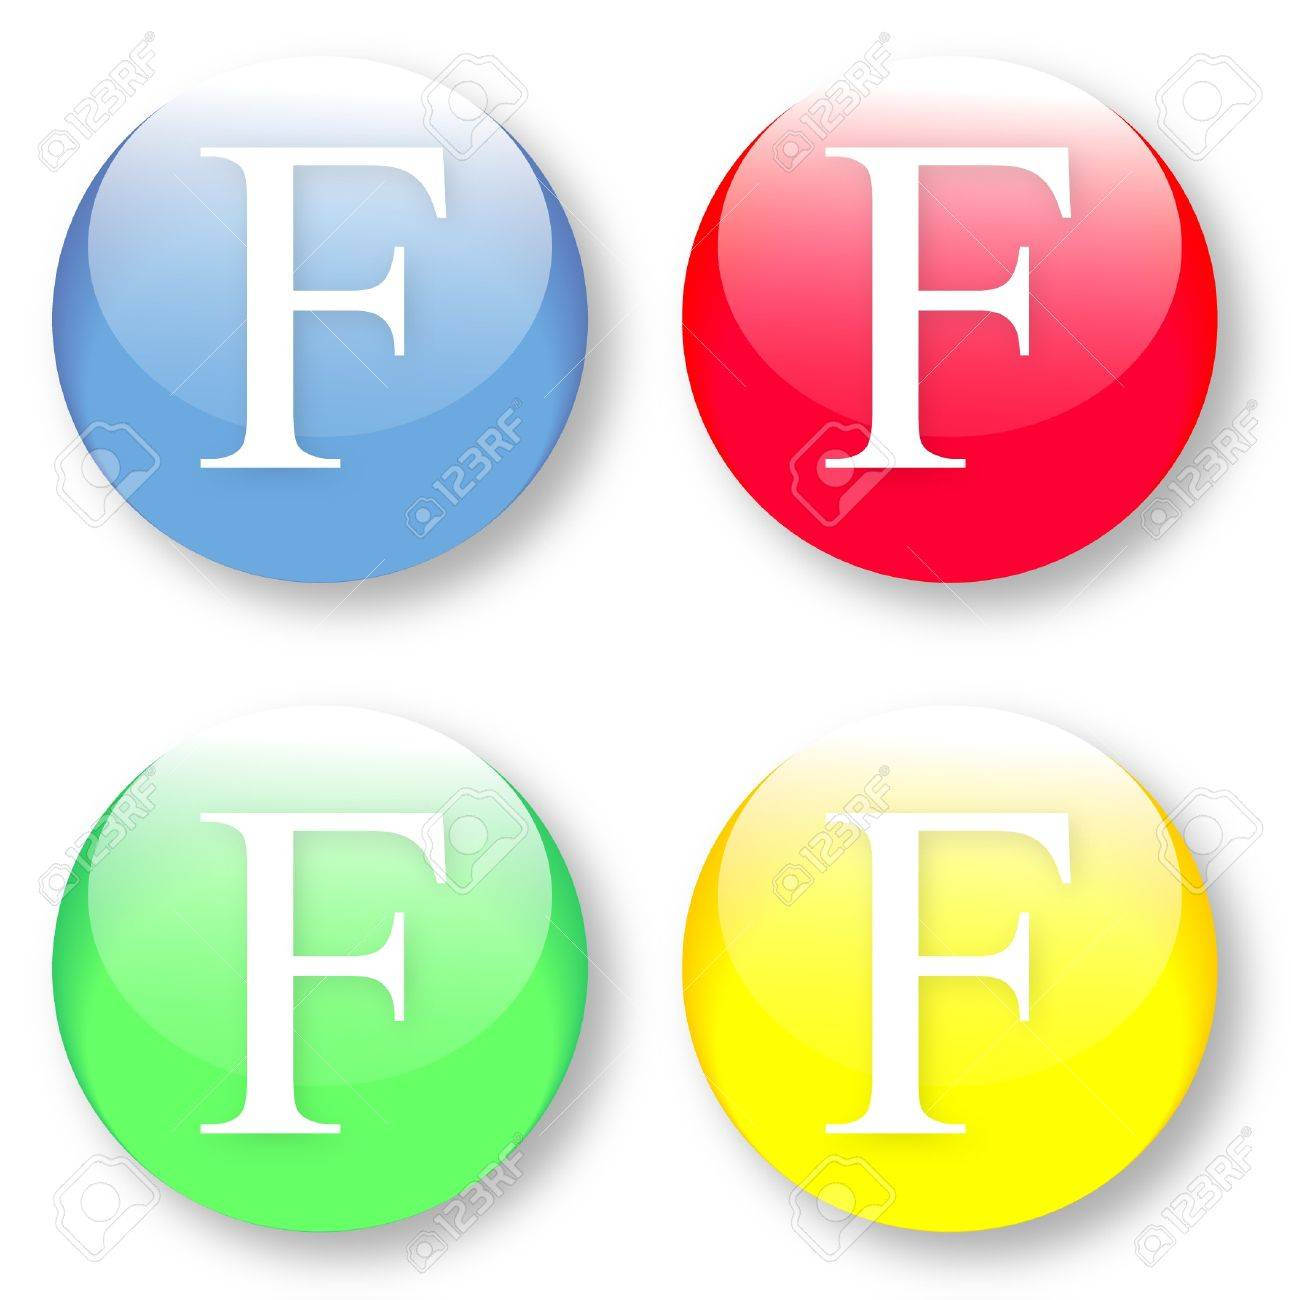 Letter F Times New Roman font type icons set on blue, red, green and yellow glassy buttons isolated on white background  Vector illustration may be resized to any scale without data losses Stock Vector - 19654215